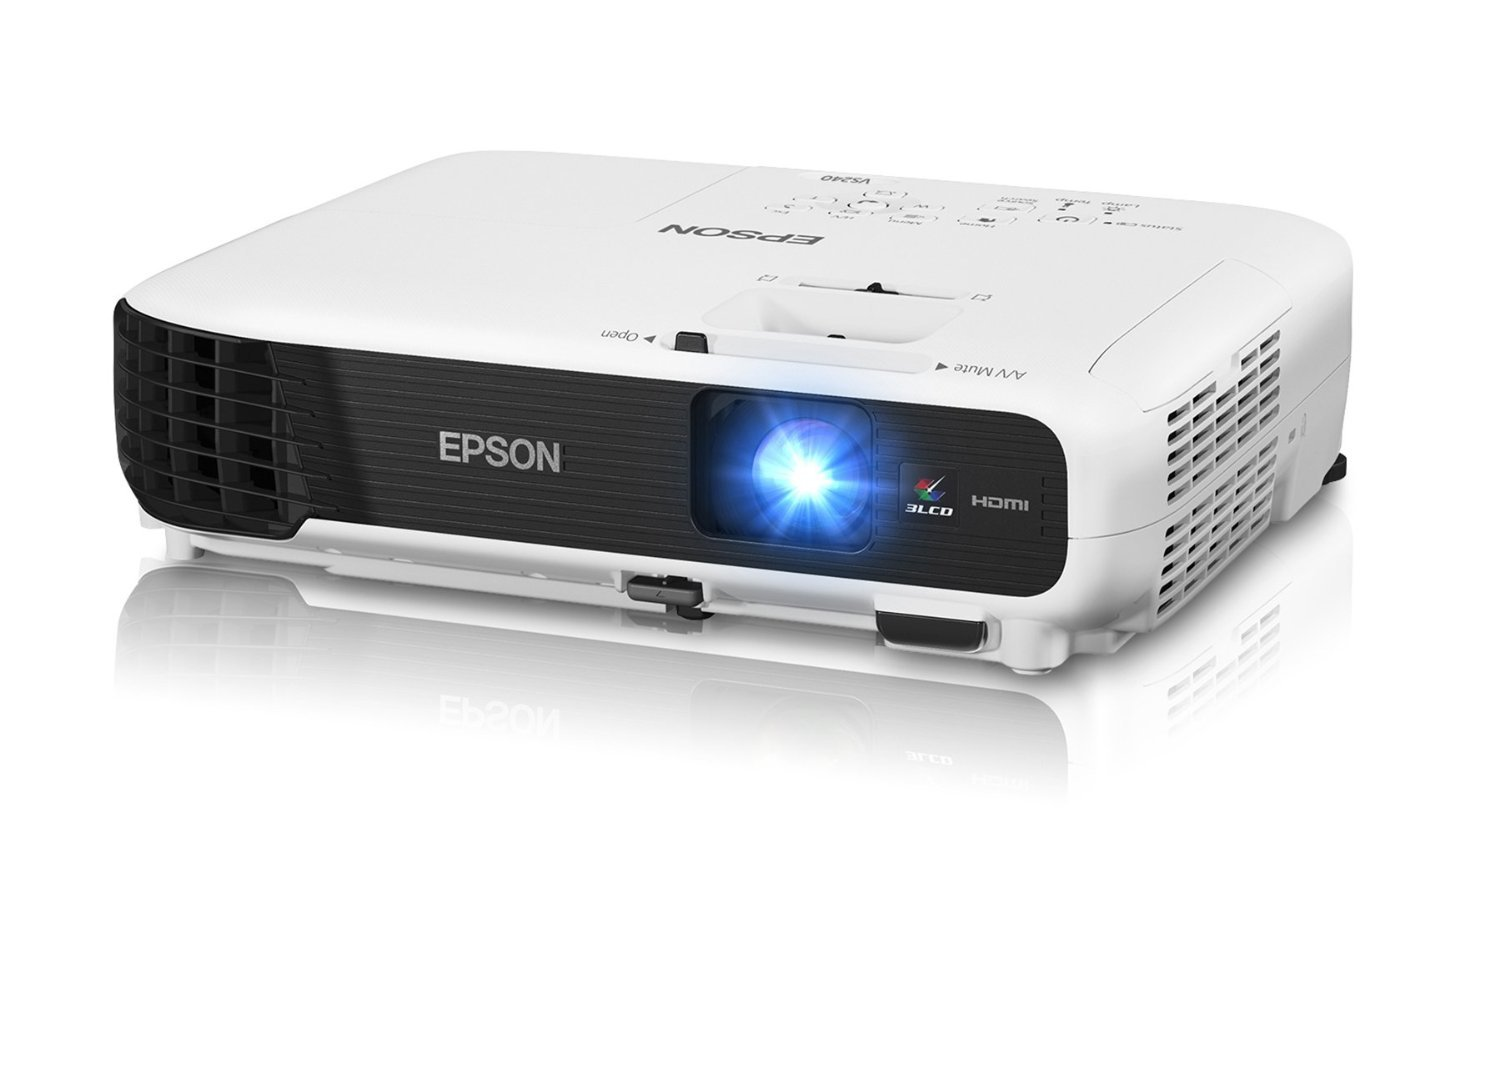 Epson VS240 SVGA 3LCD Projector 3000 Lumens Color Brightness [並行輸入品] B0187QABRA